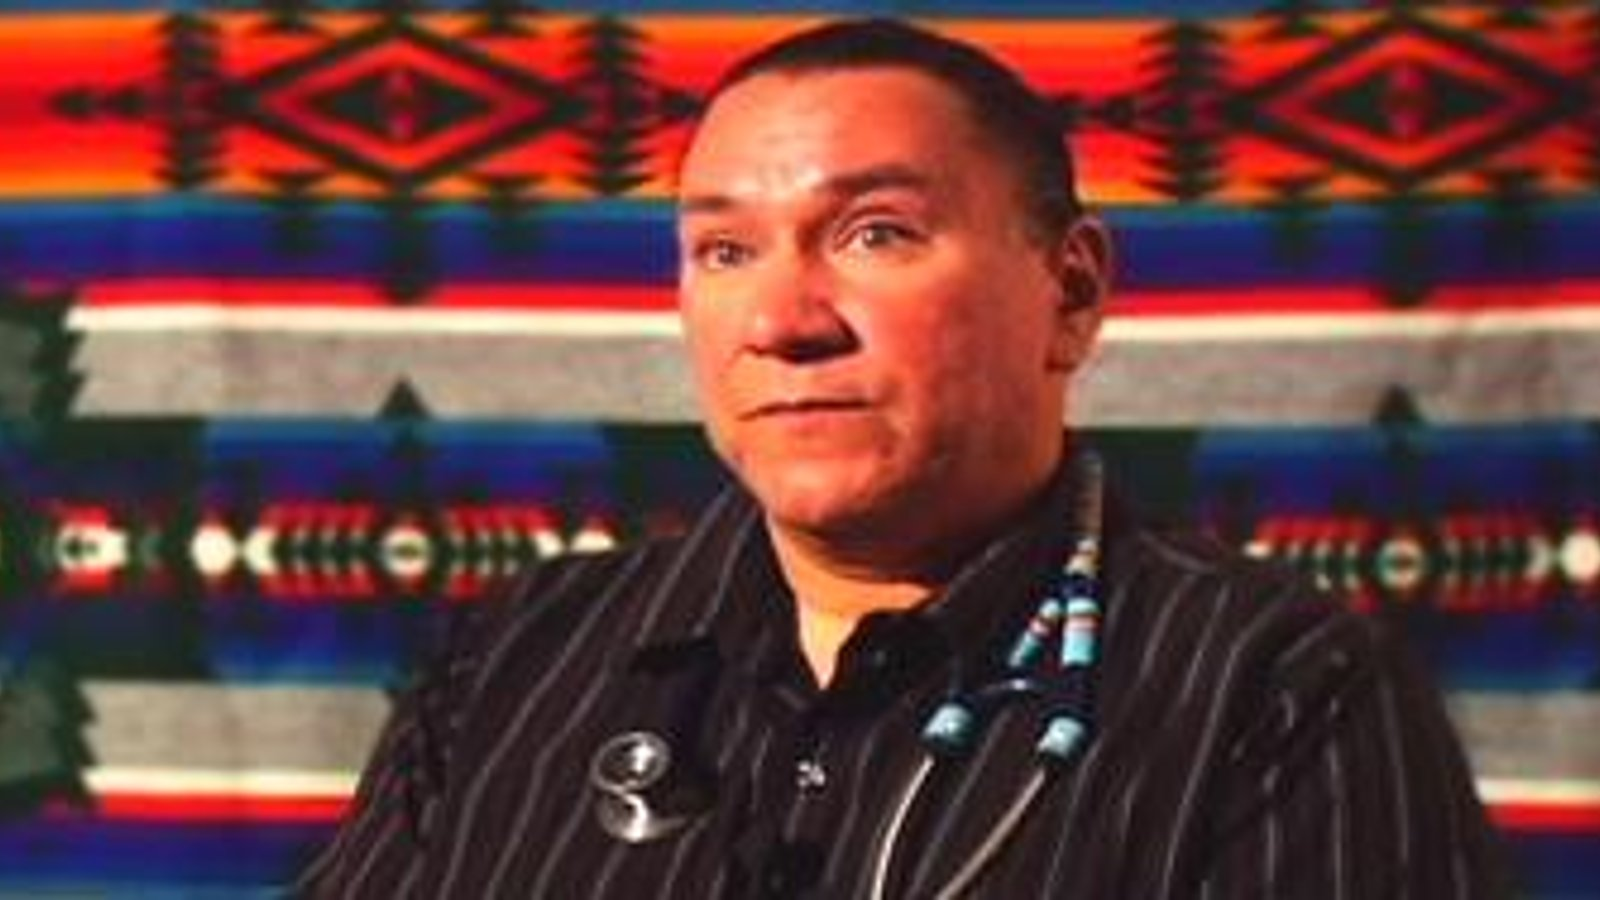 Walking Into The Unknown - Native Americans and the US Healthcare System